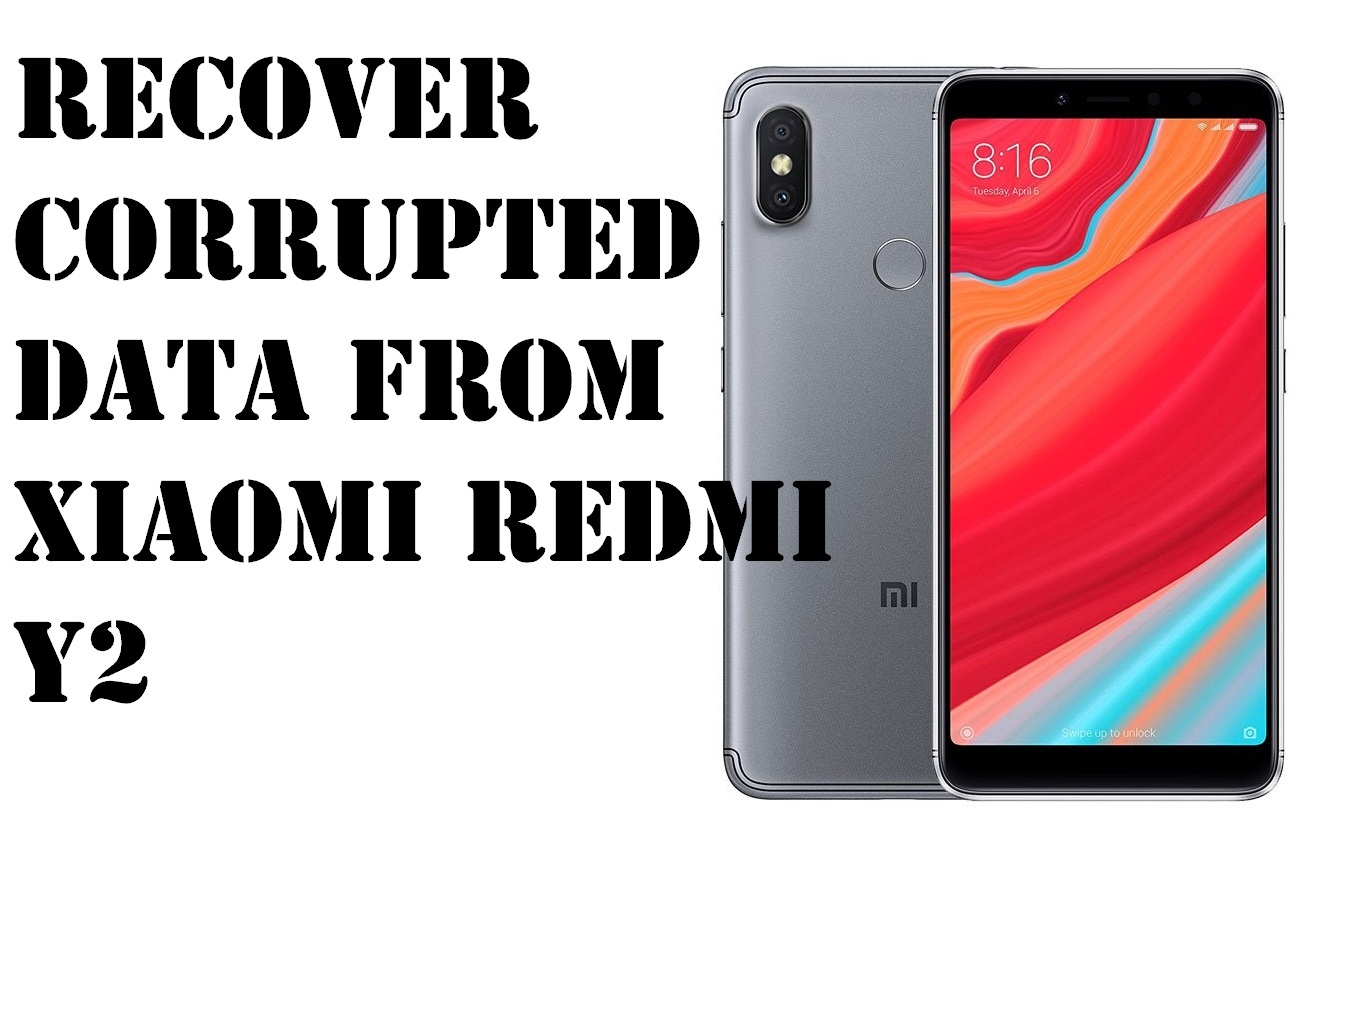 Easy tricks to recover corrupted data from Xiaomi Redmi Y2 phone